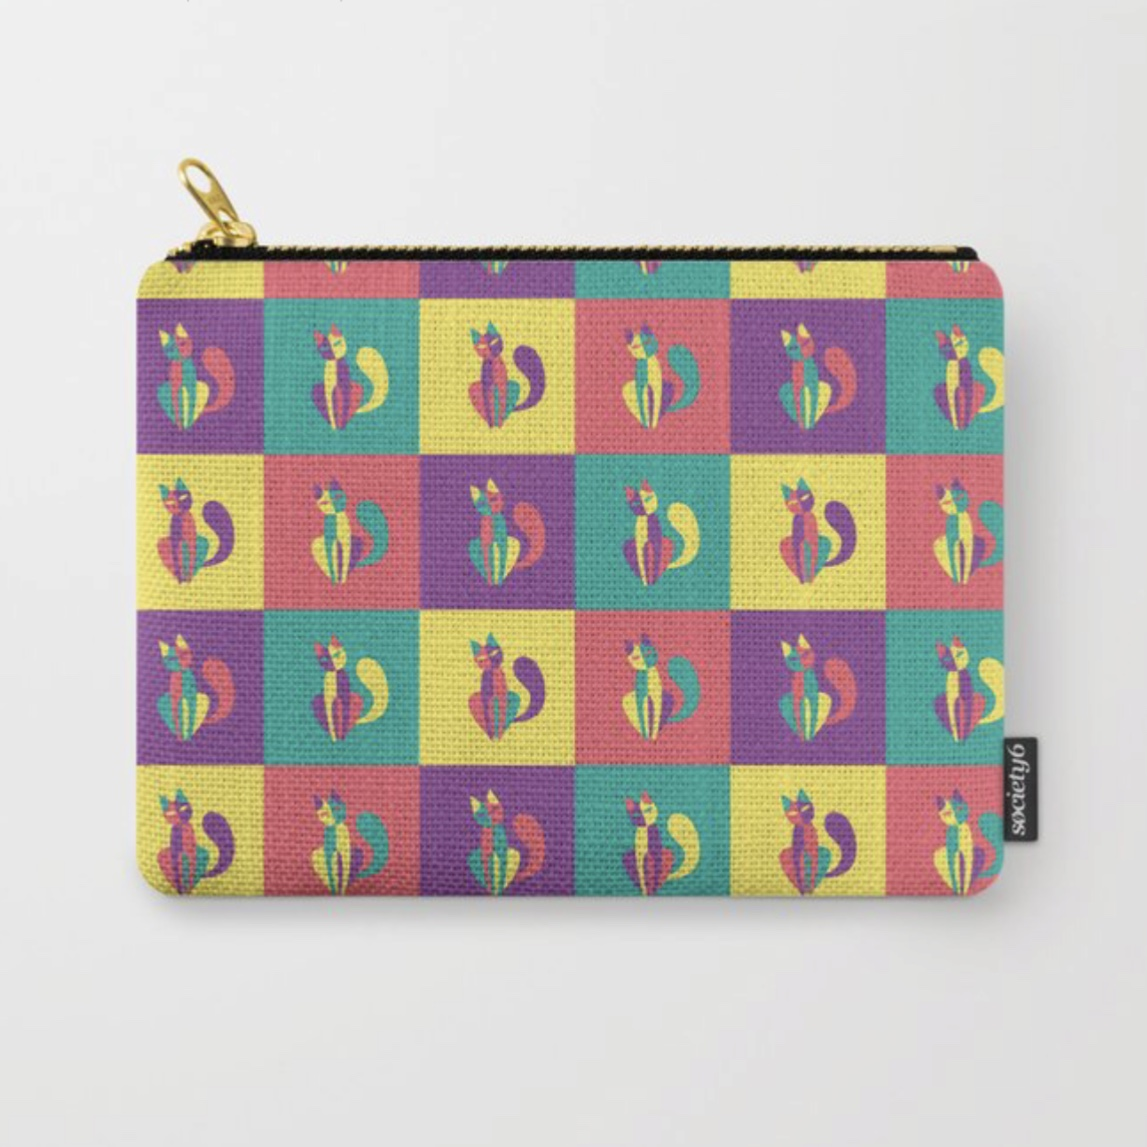 Pop goes the kitten studio pouch at Society6